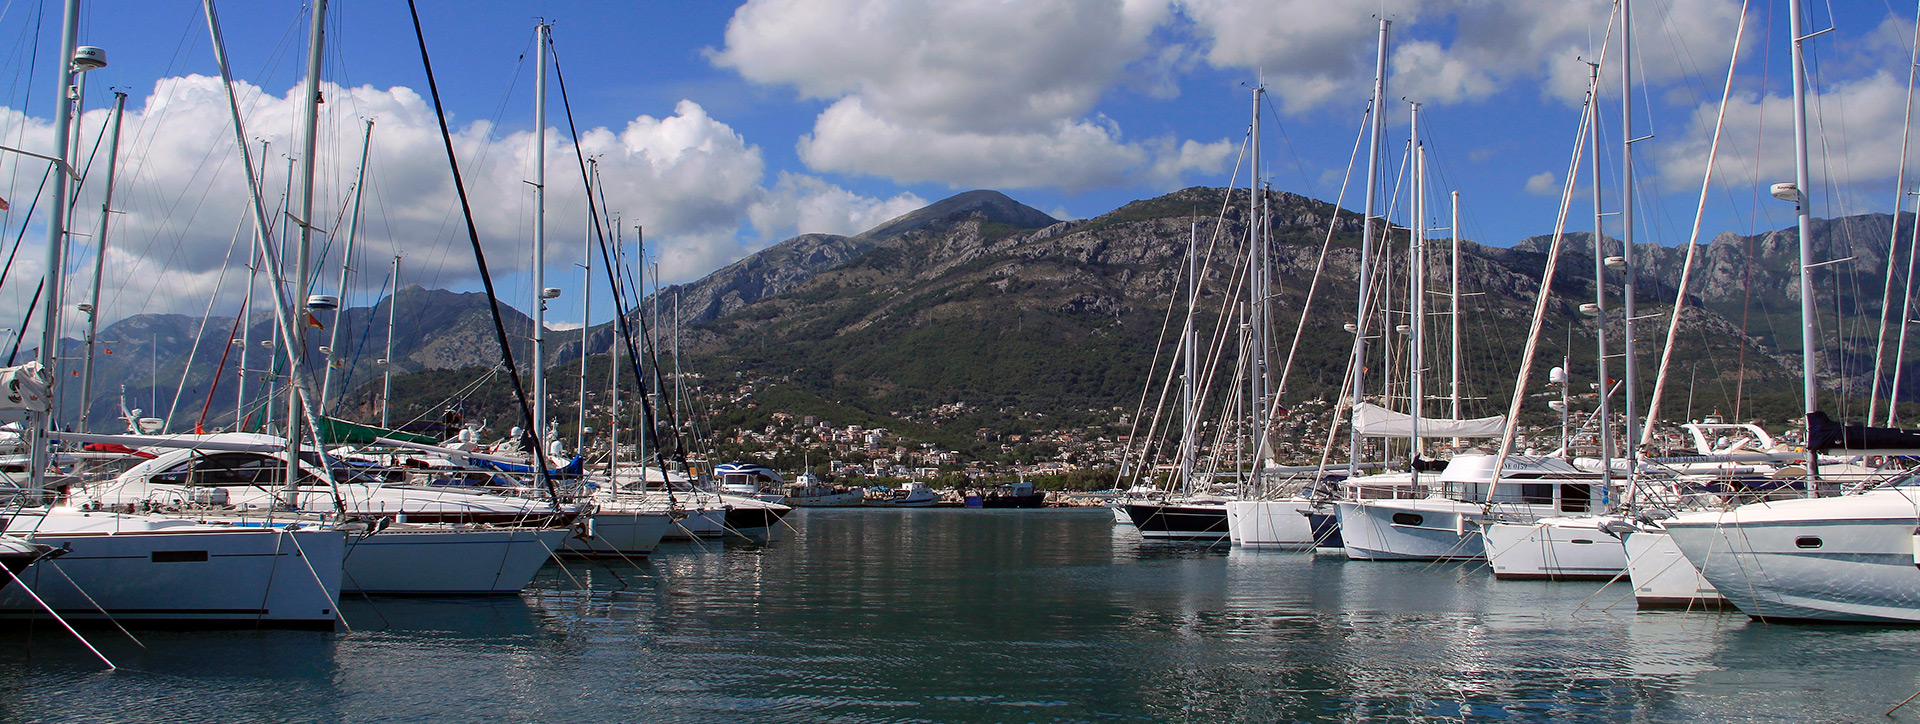 City Marina, Bar, Montenegro - Adriatic sailing routes of SimpleSail